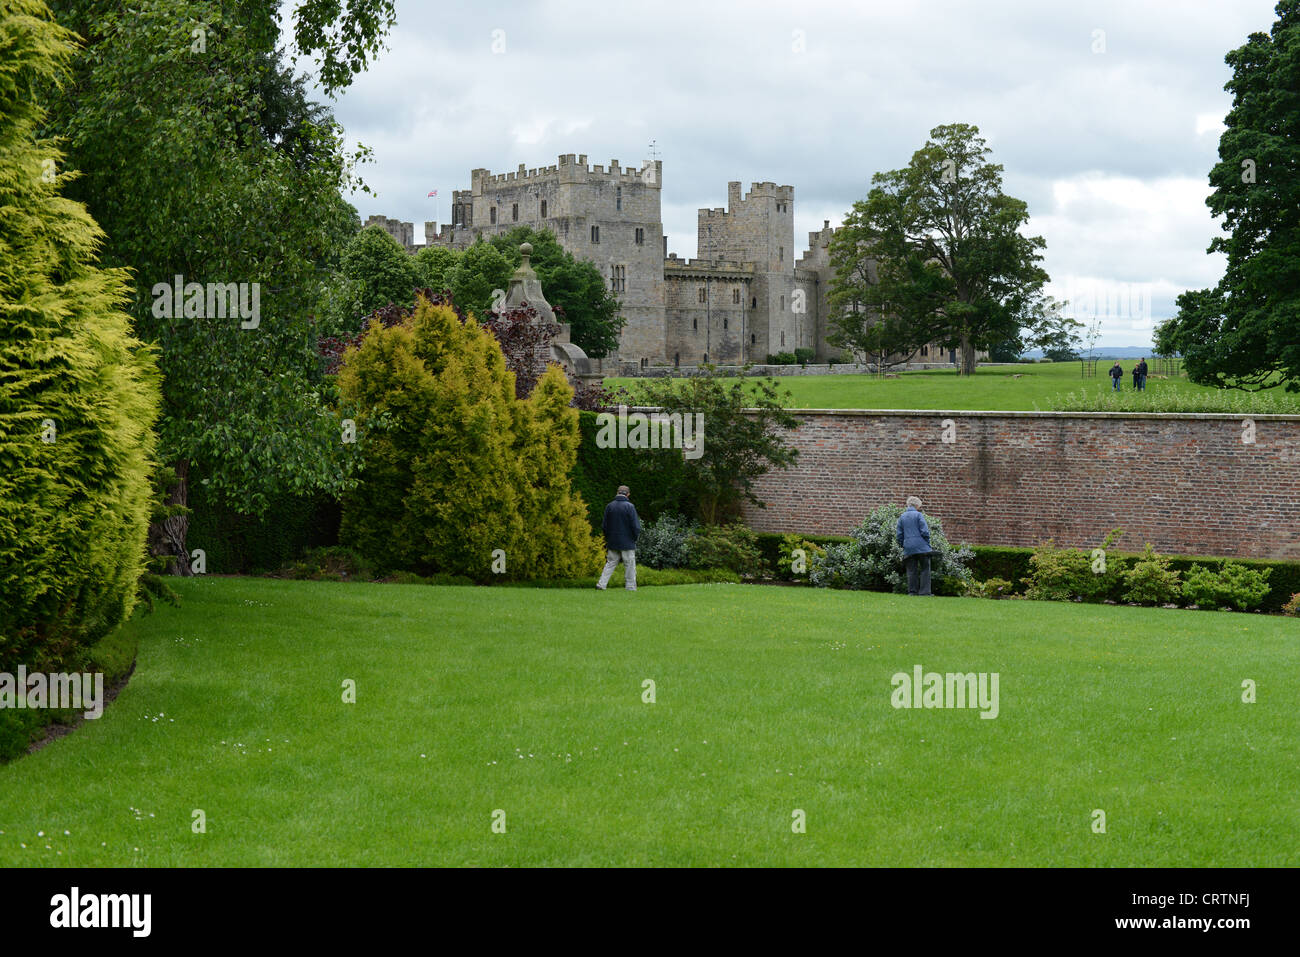 Tourists wander around the gardens at Raby Castle, County Durham, UK - Stock Image